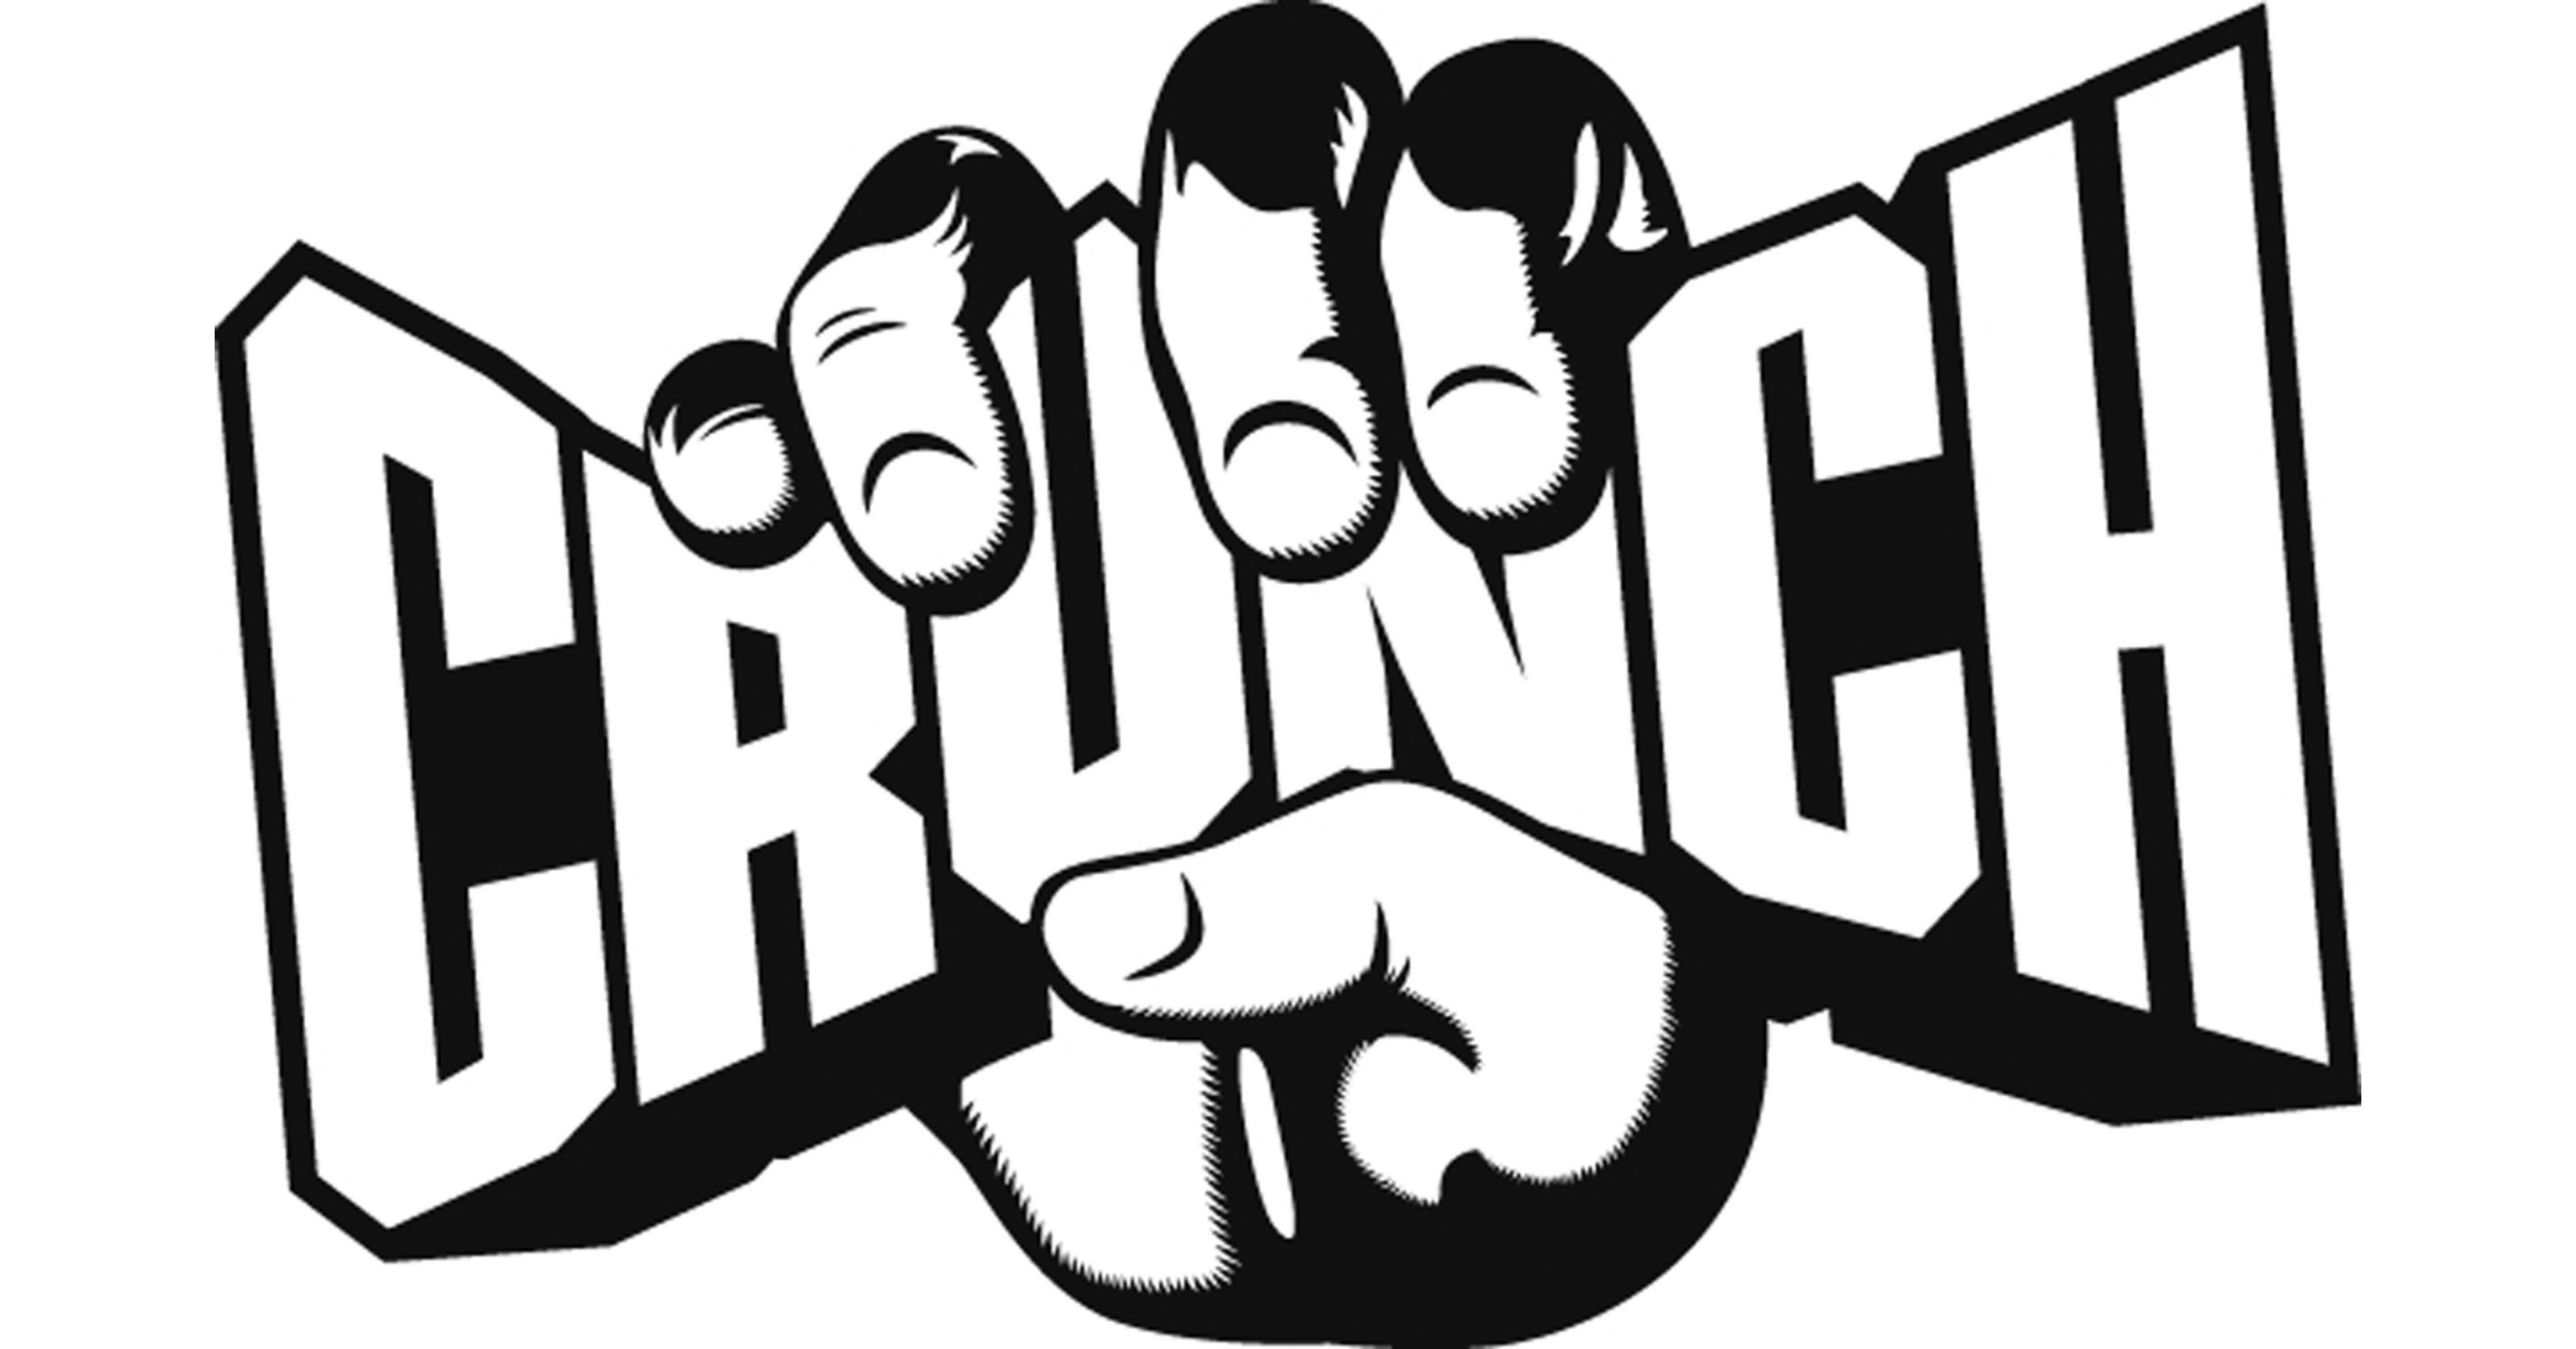 Crunch Franchise Announces Its Newest Location in Topeka, KS.